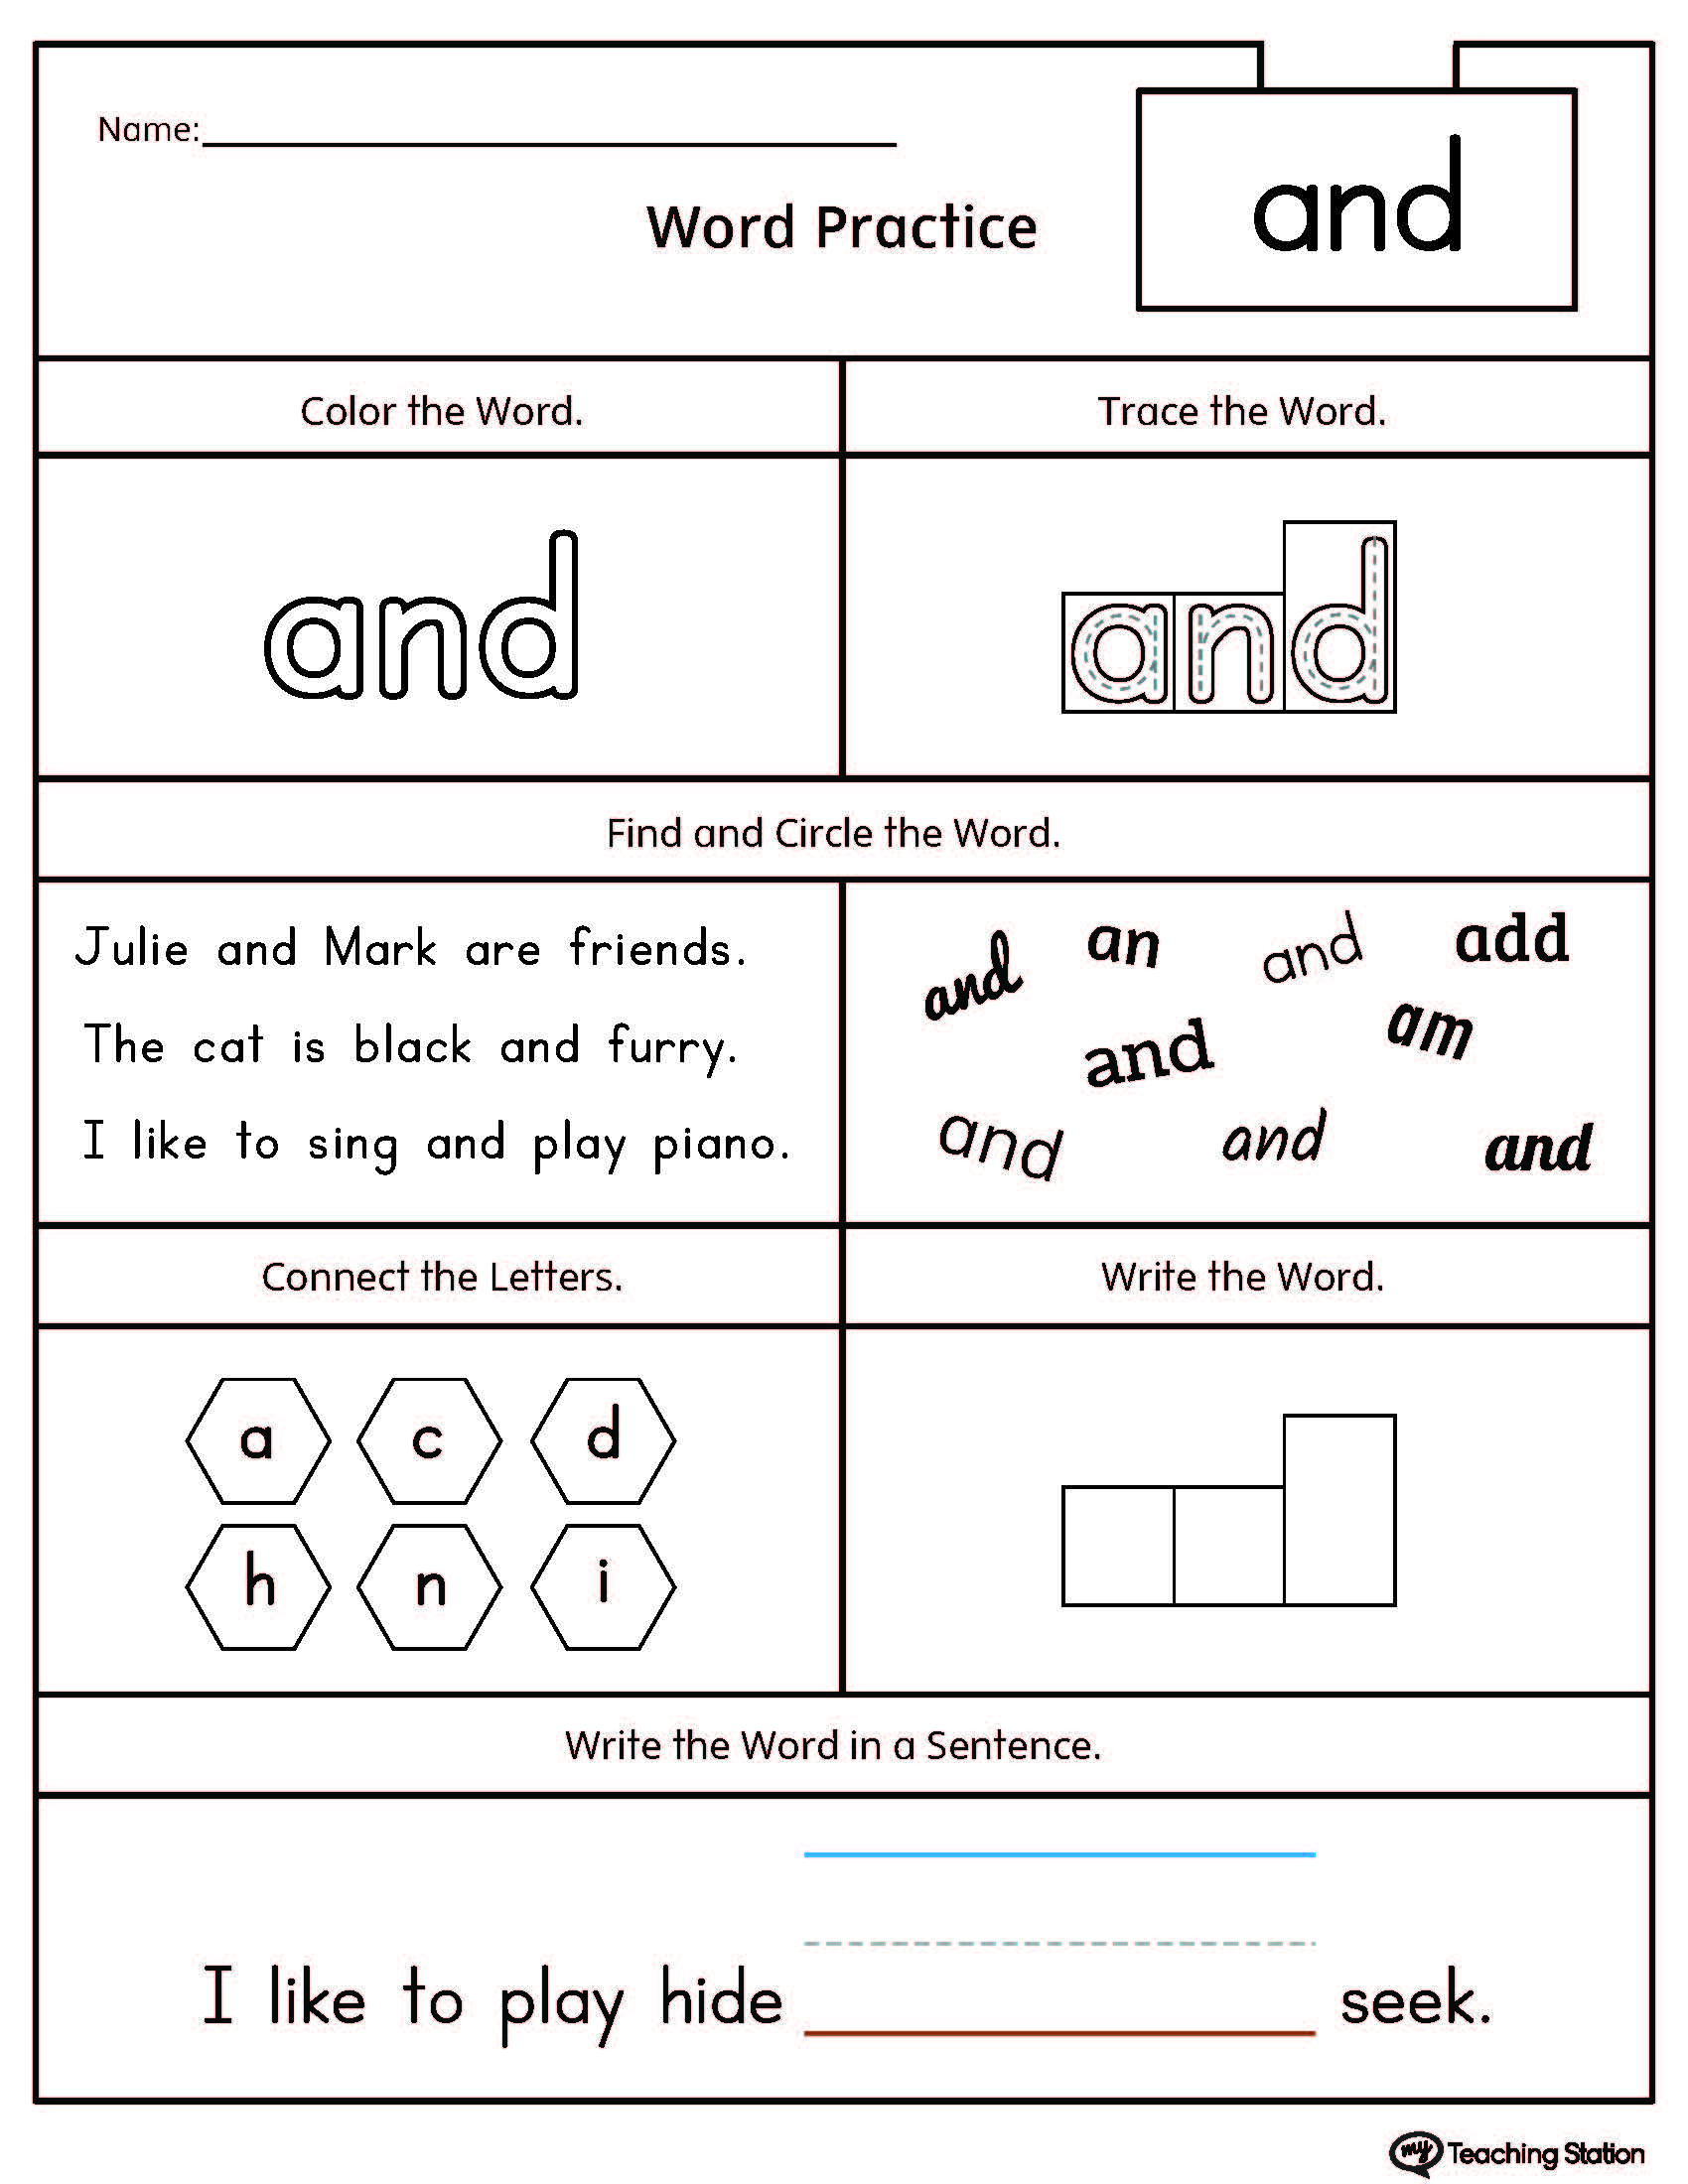 Best Worksheets For Kids Page